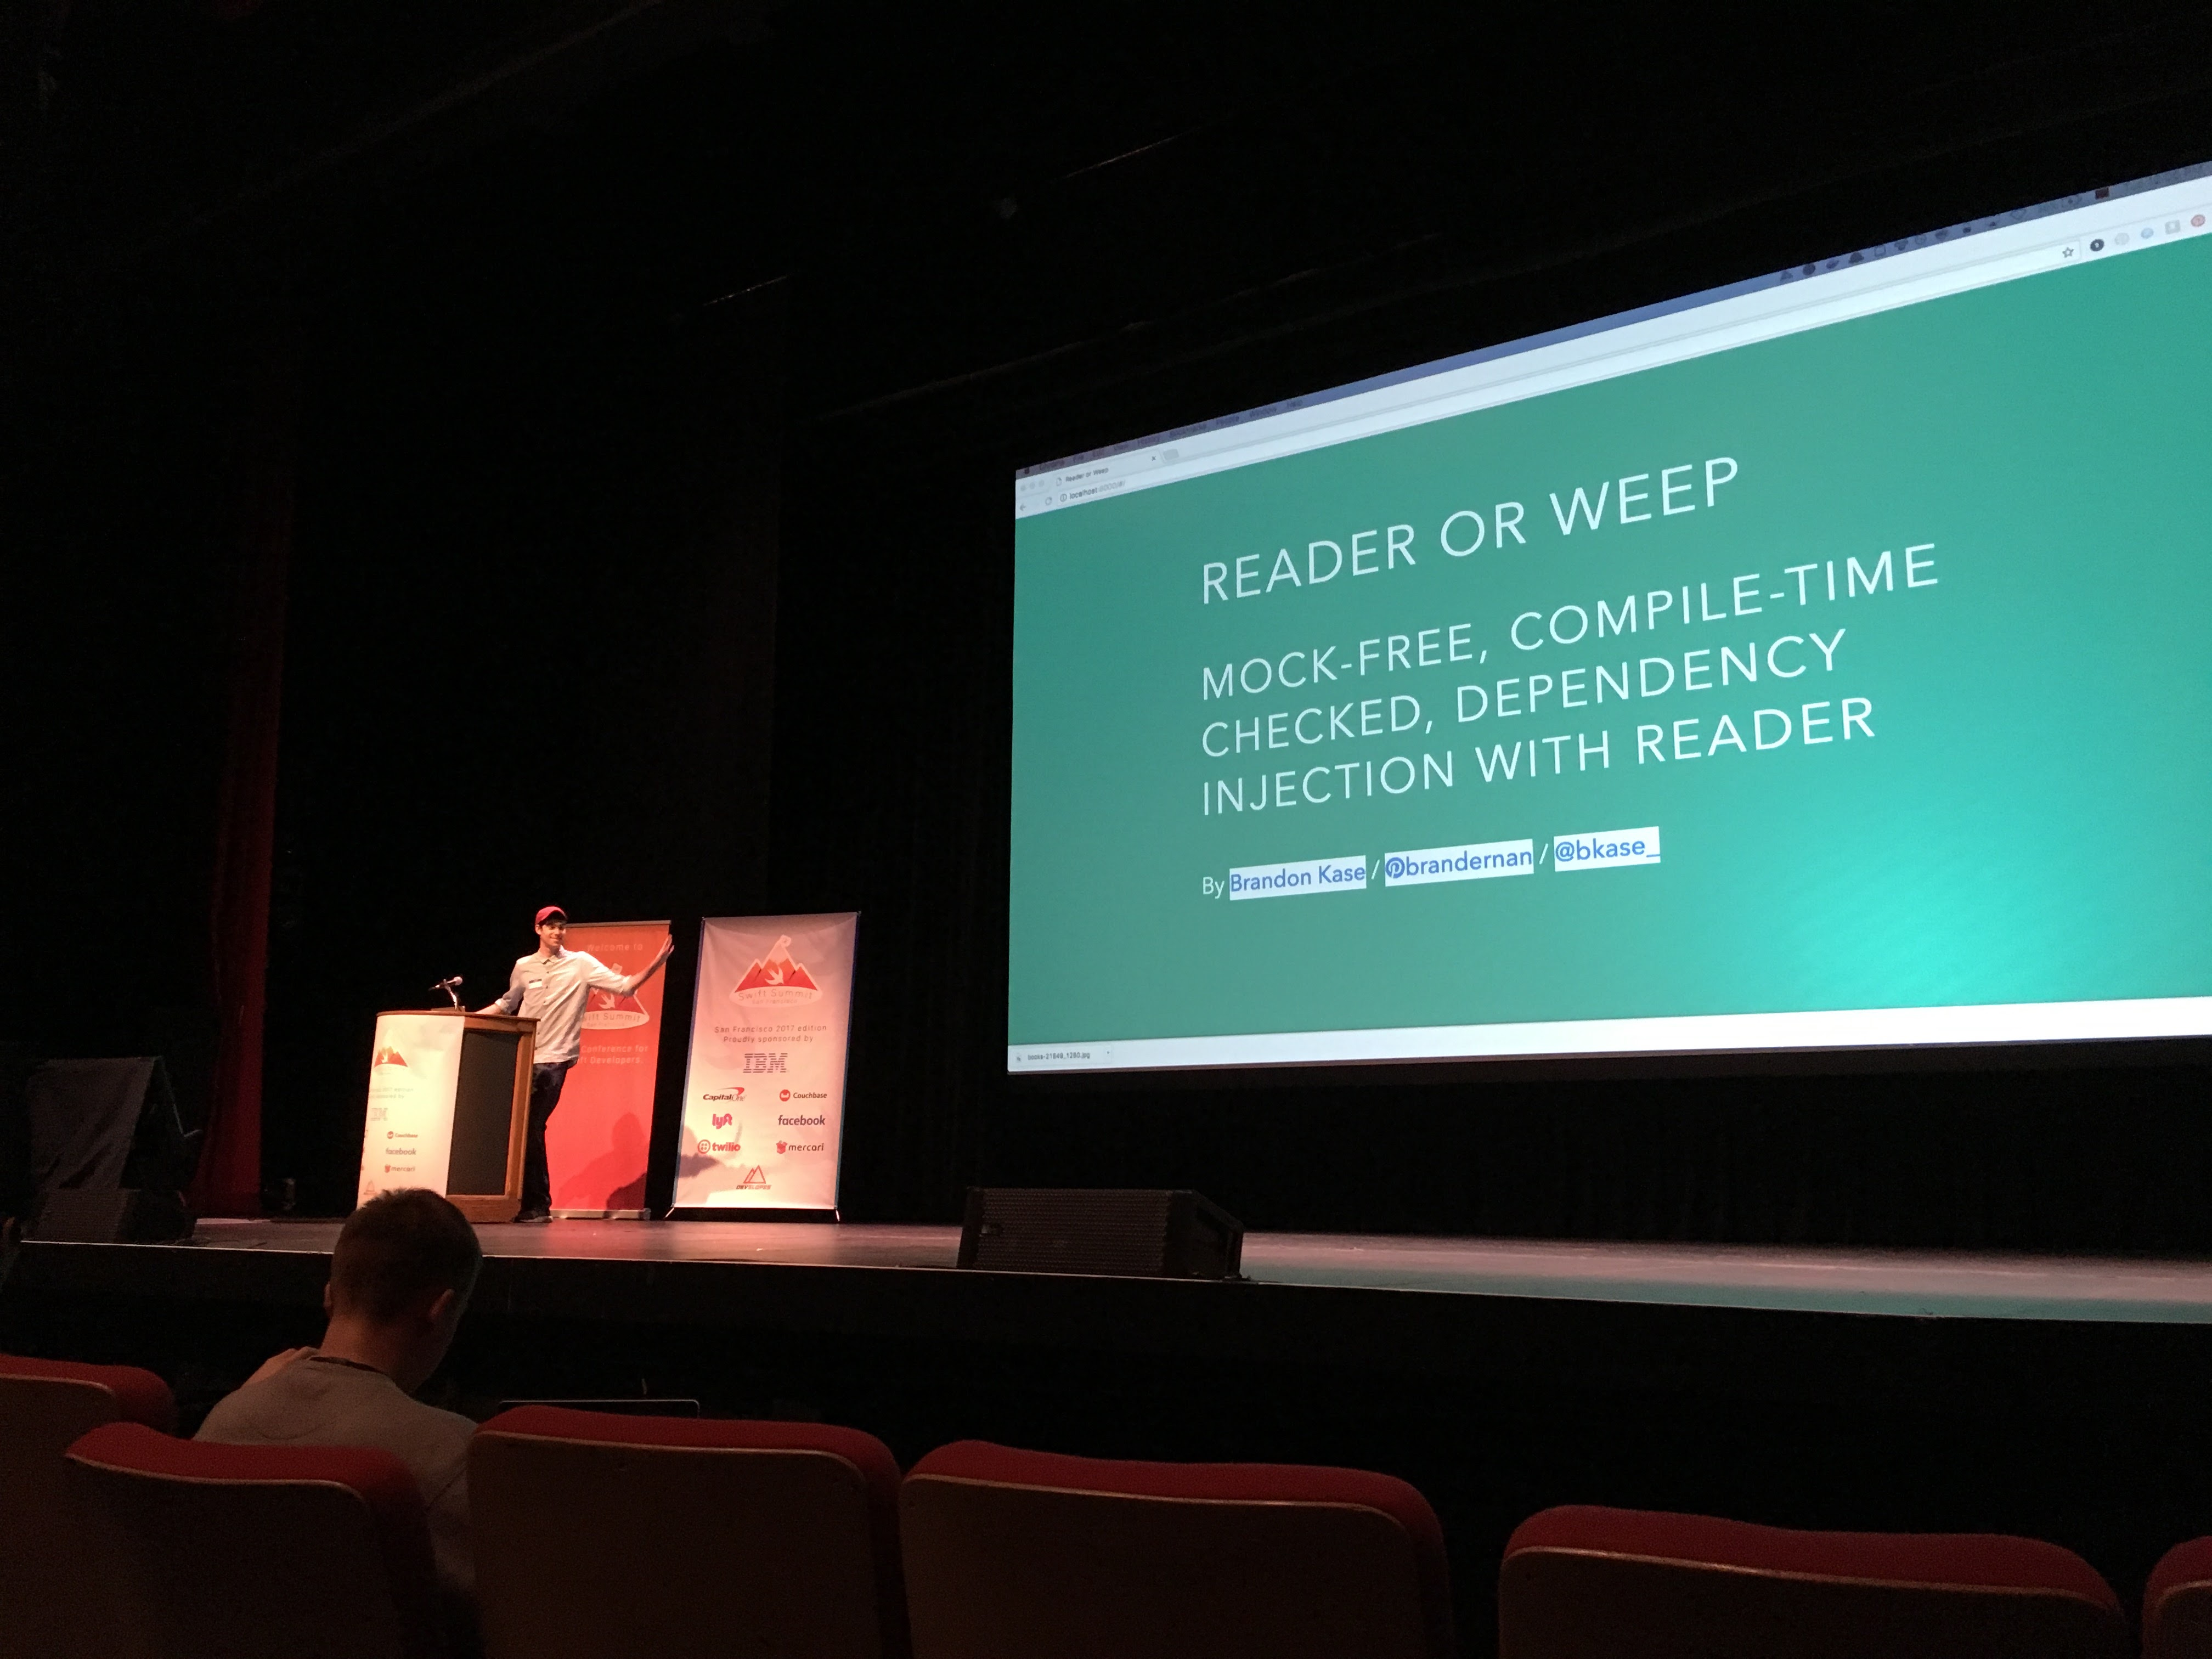 Reader or Weep: Mock-free, Compile-time checked, Dependency Injection with Reader